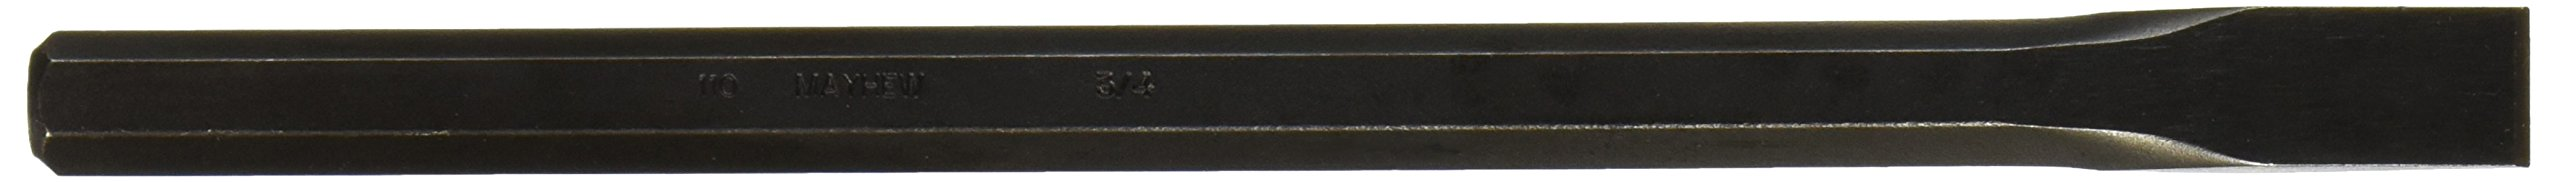 Mayhew Pro 10213 3/4-by-12-Inch Black Oxide Cold Chisel